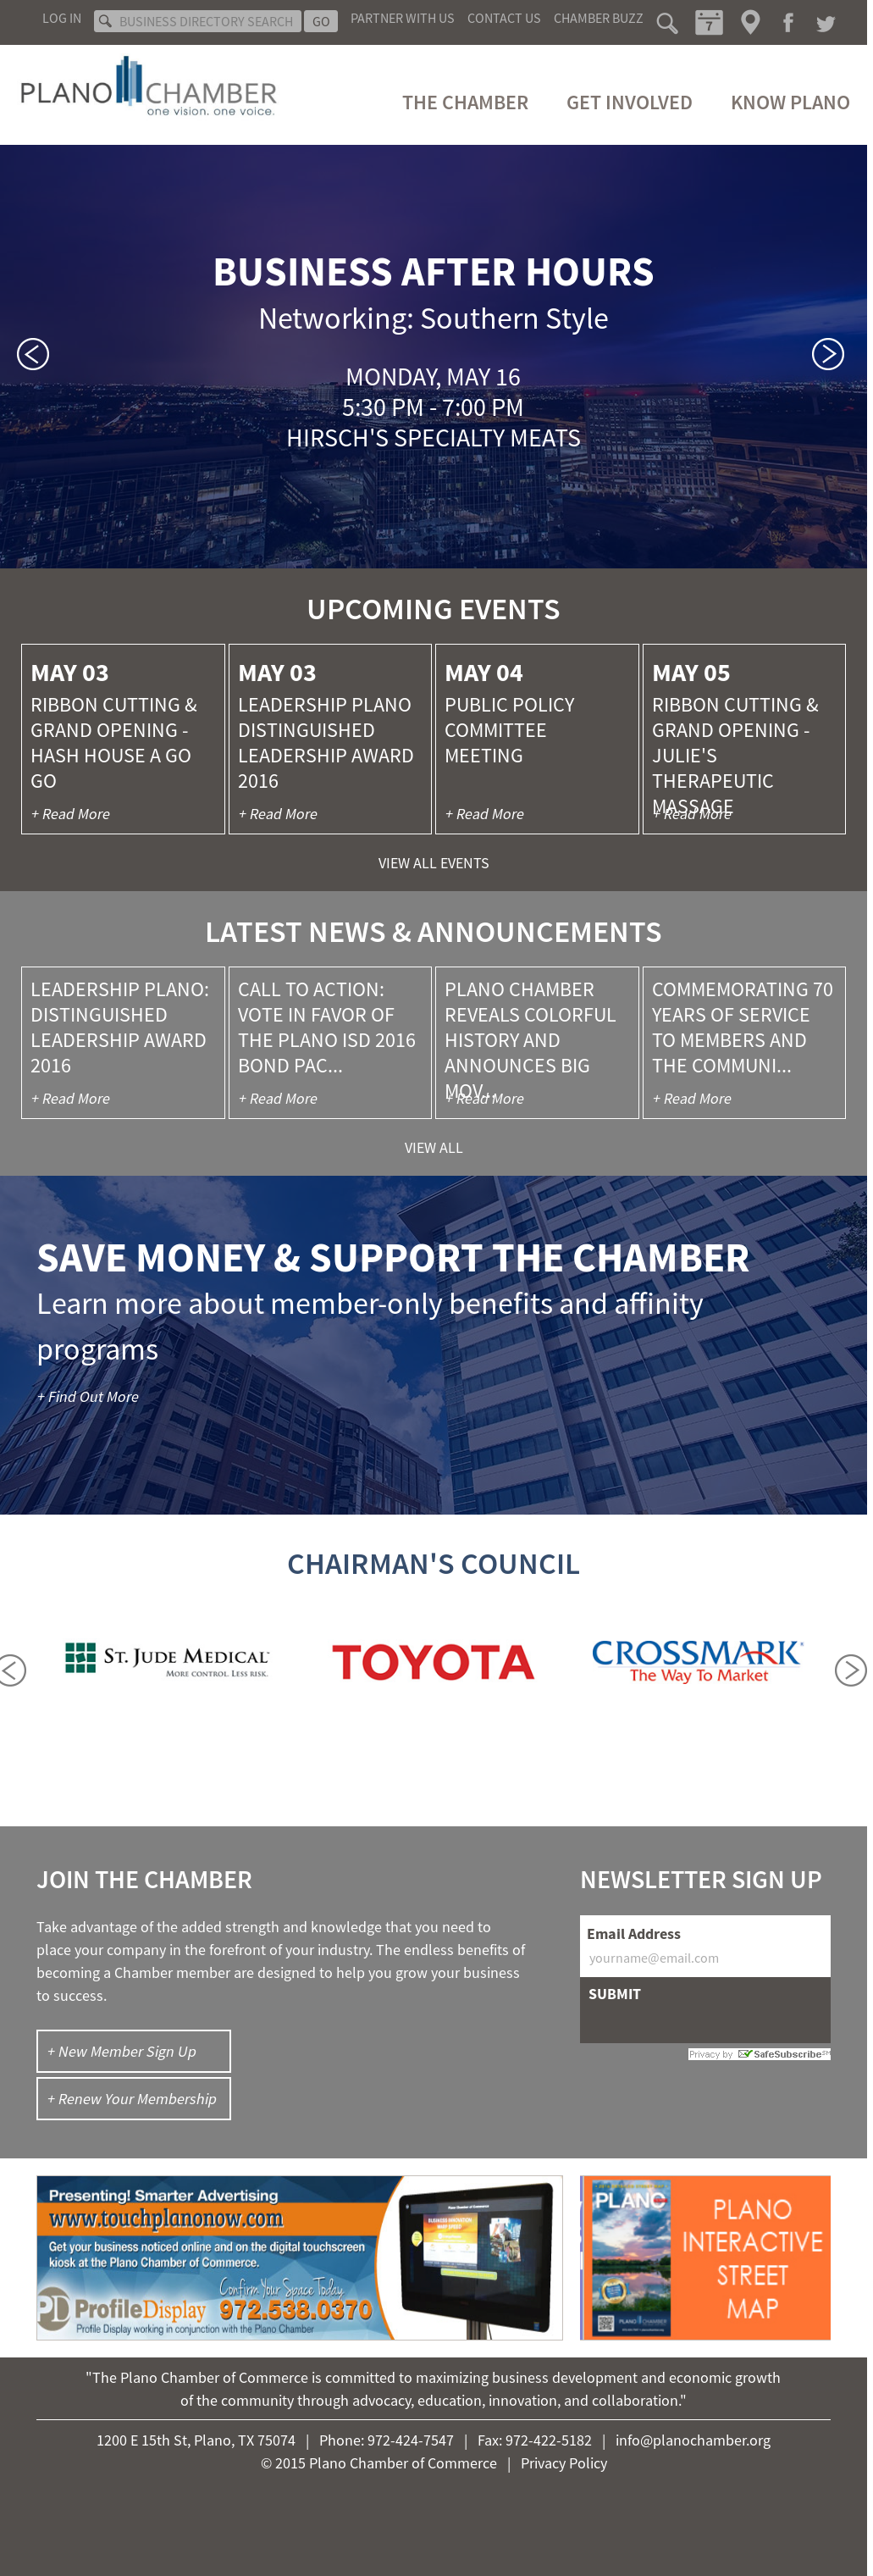 Plano Chamber of Commerce Competitors, Revenue and Employees